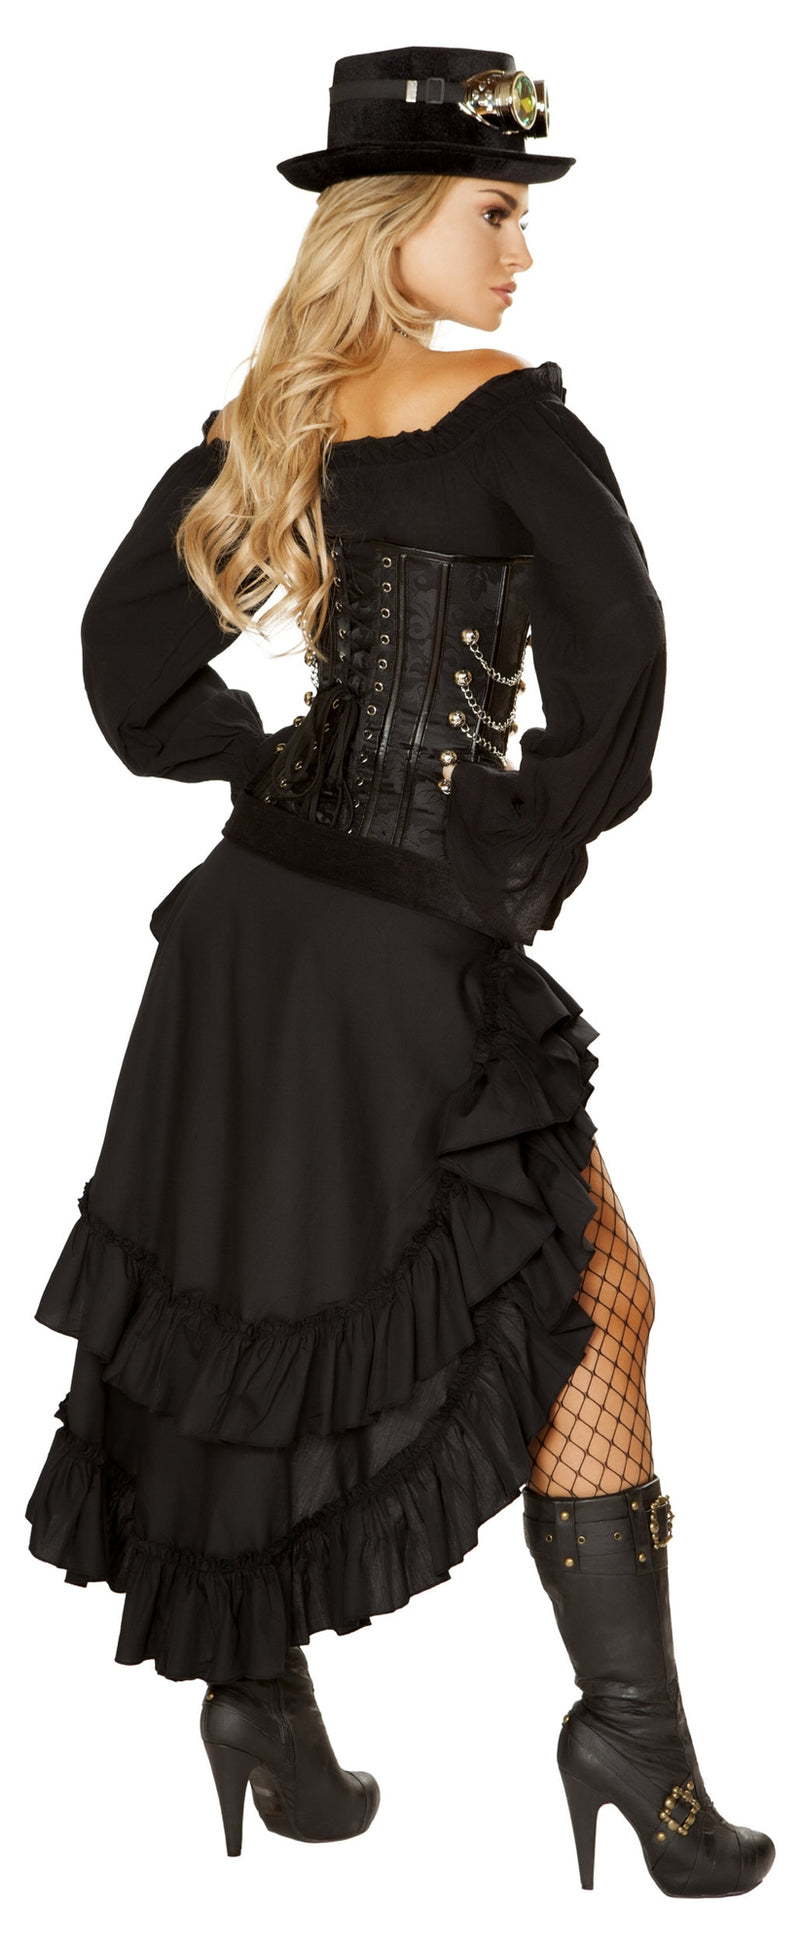 RM-4856 Victorian Steam Maiden Costume 4856 back